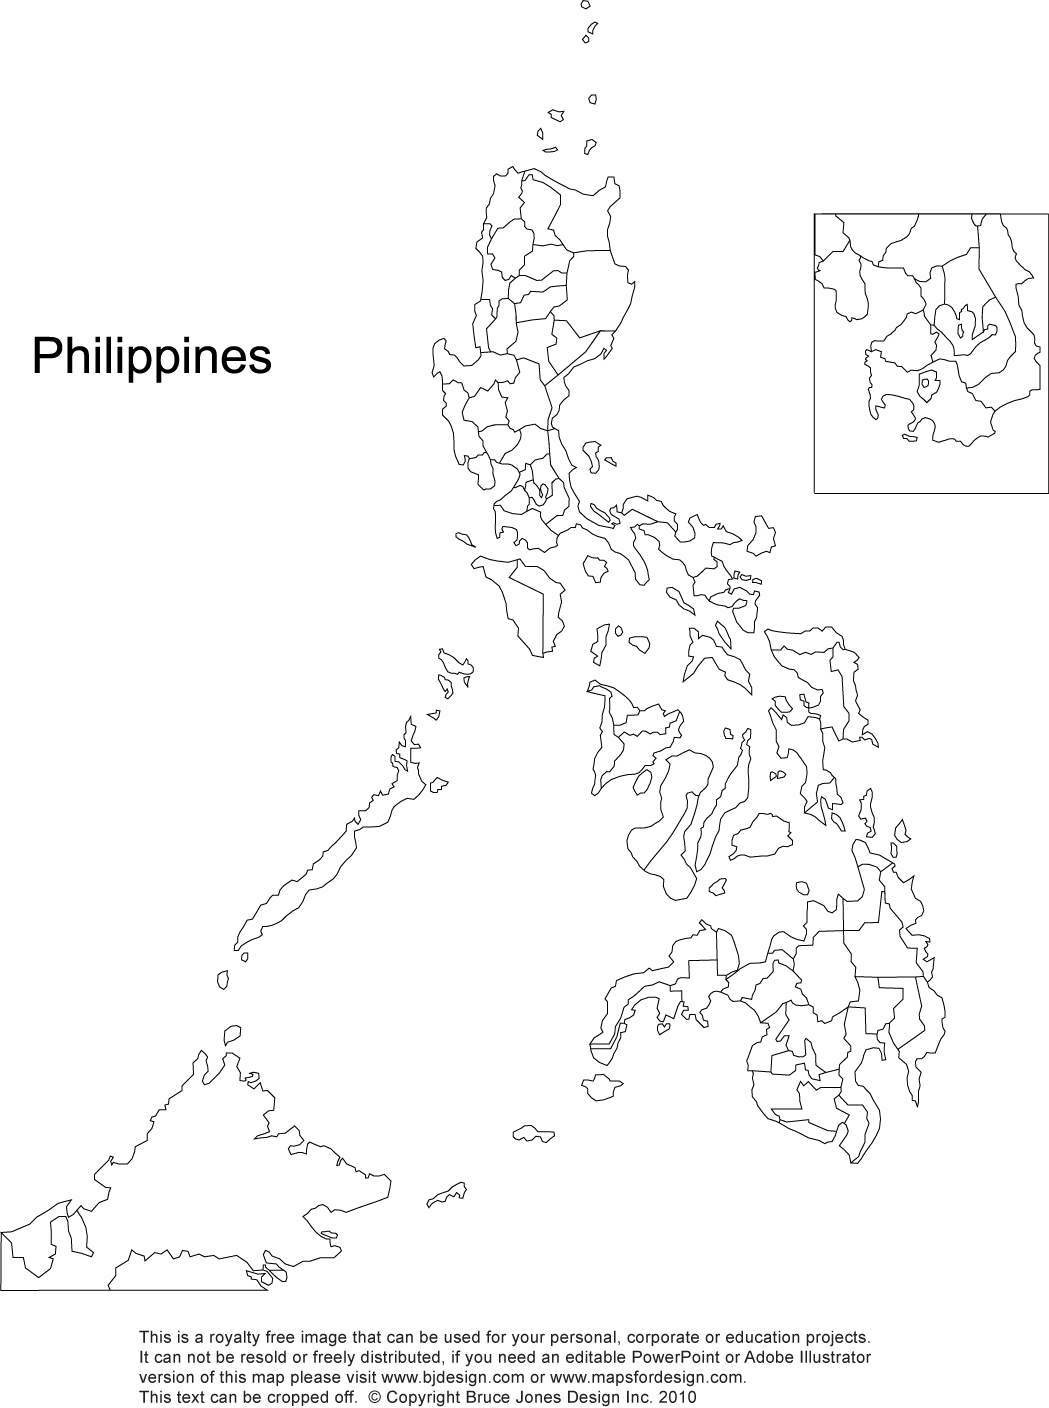 Philippines blank printable, royalty free, Manila